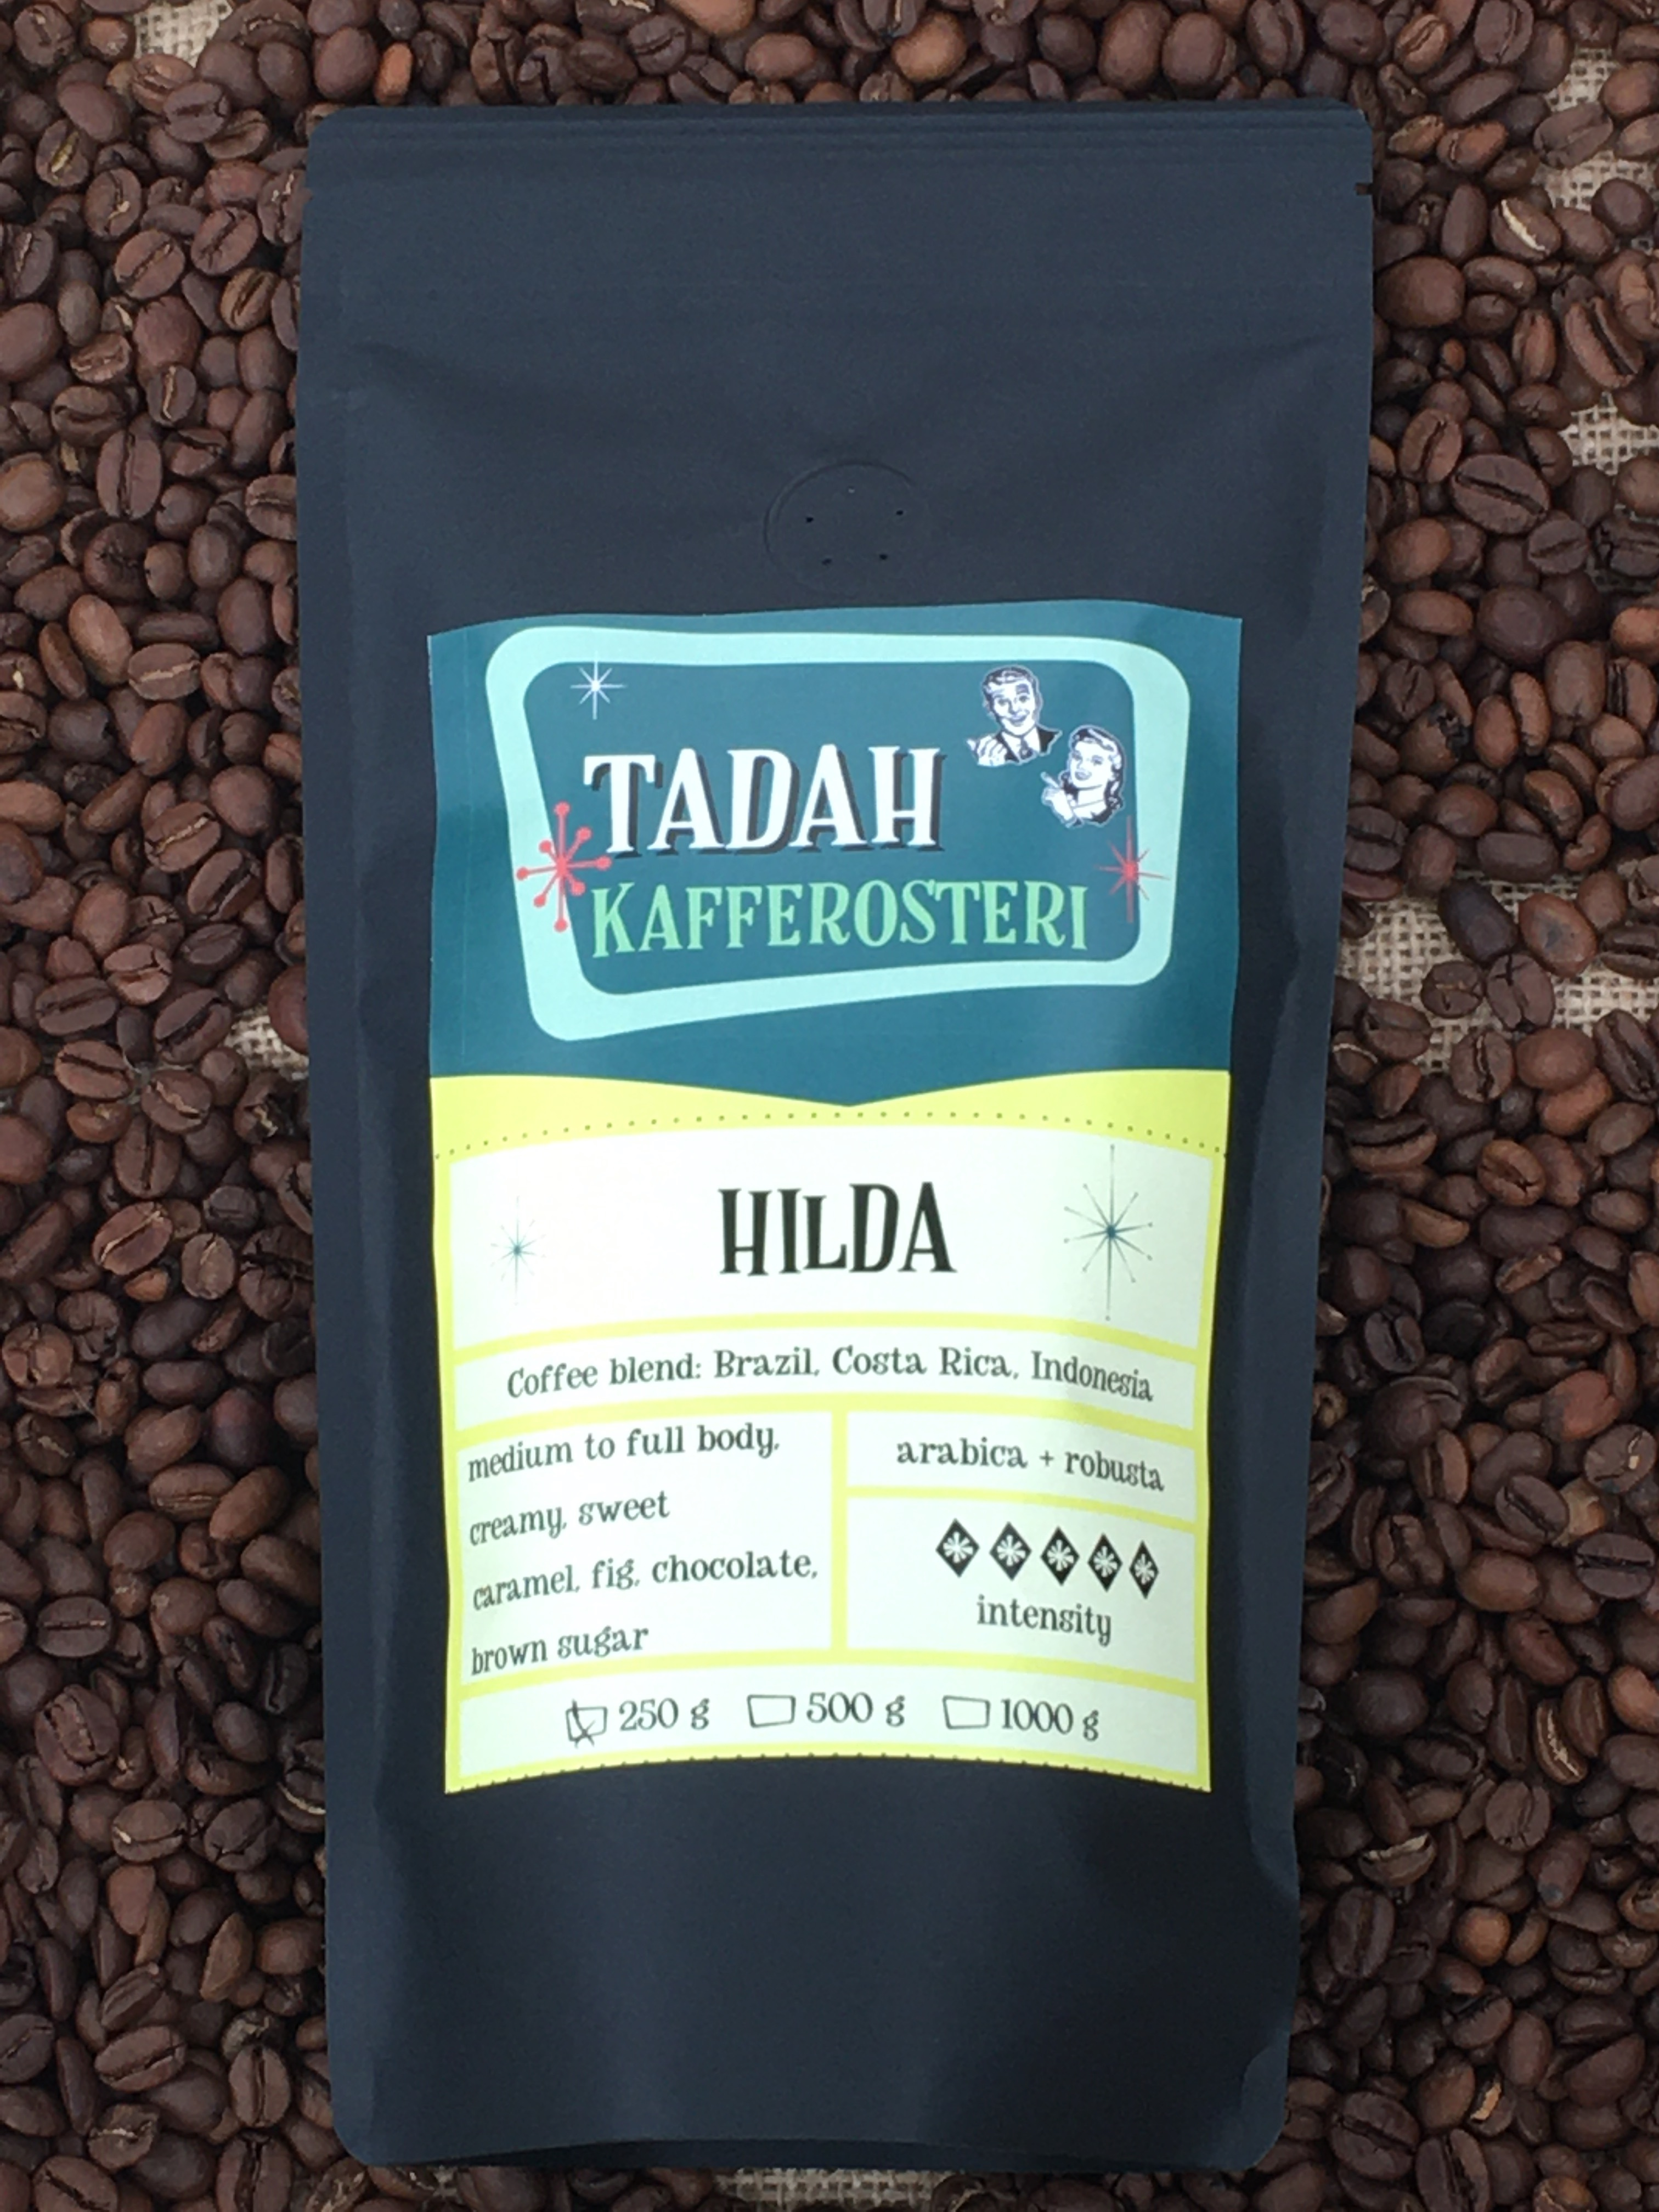 Hilda - the speciality blend